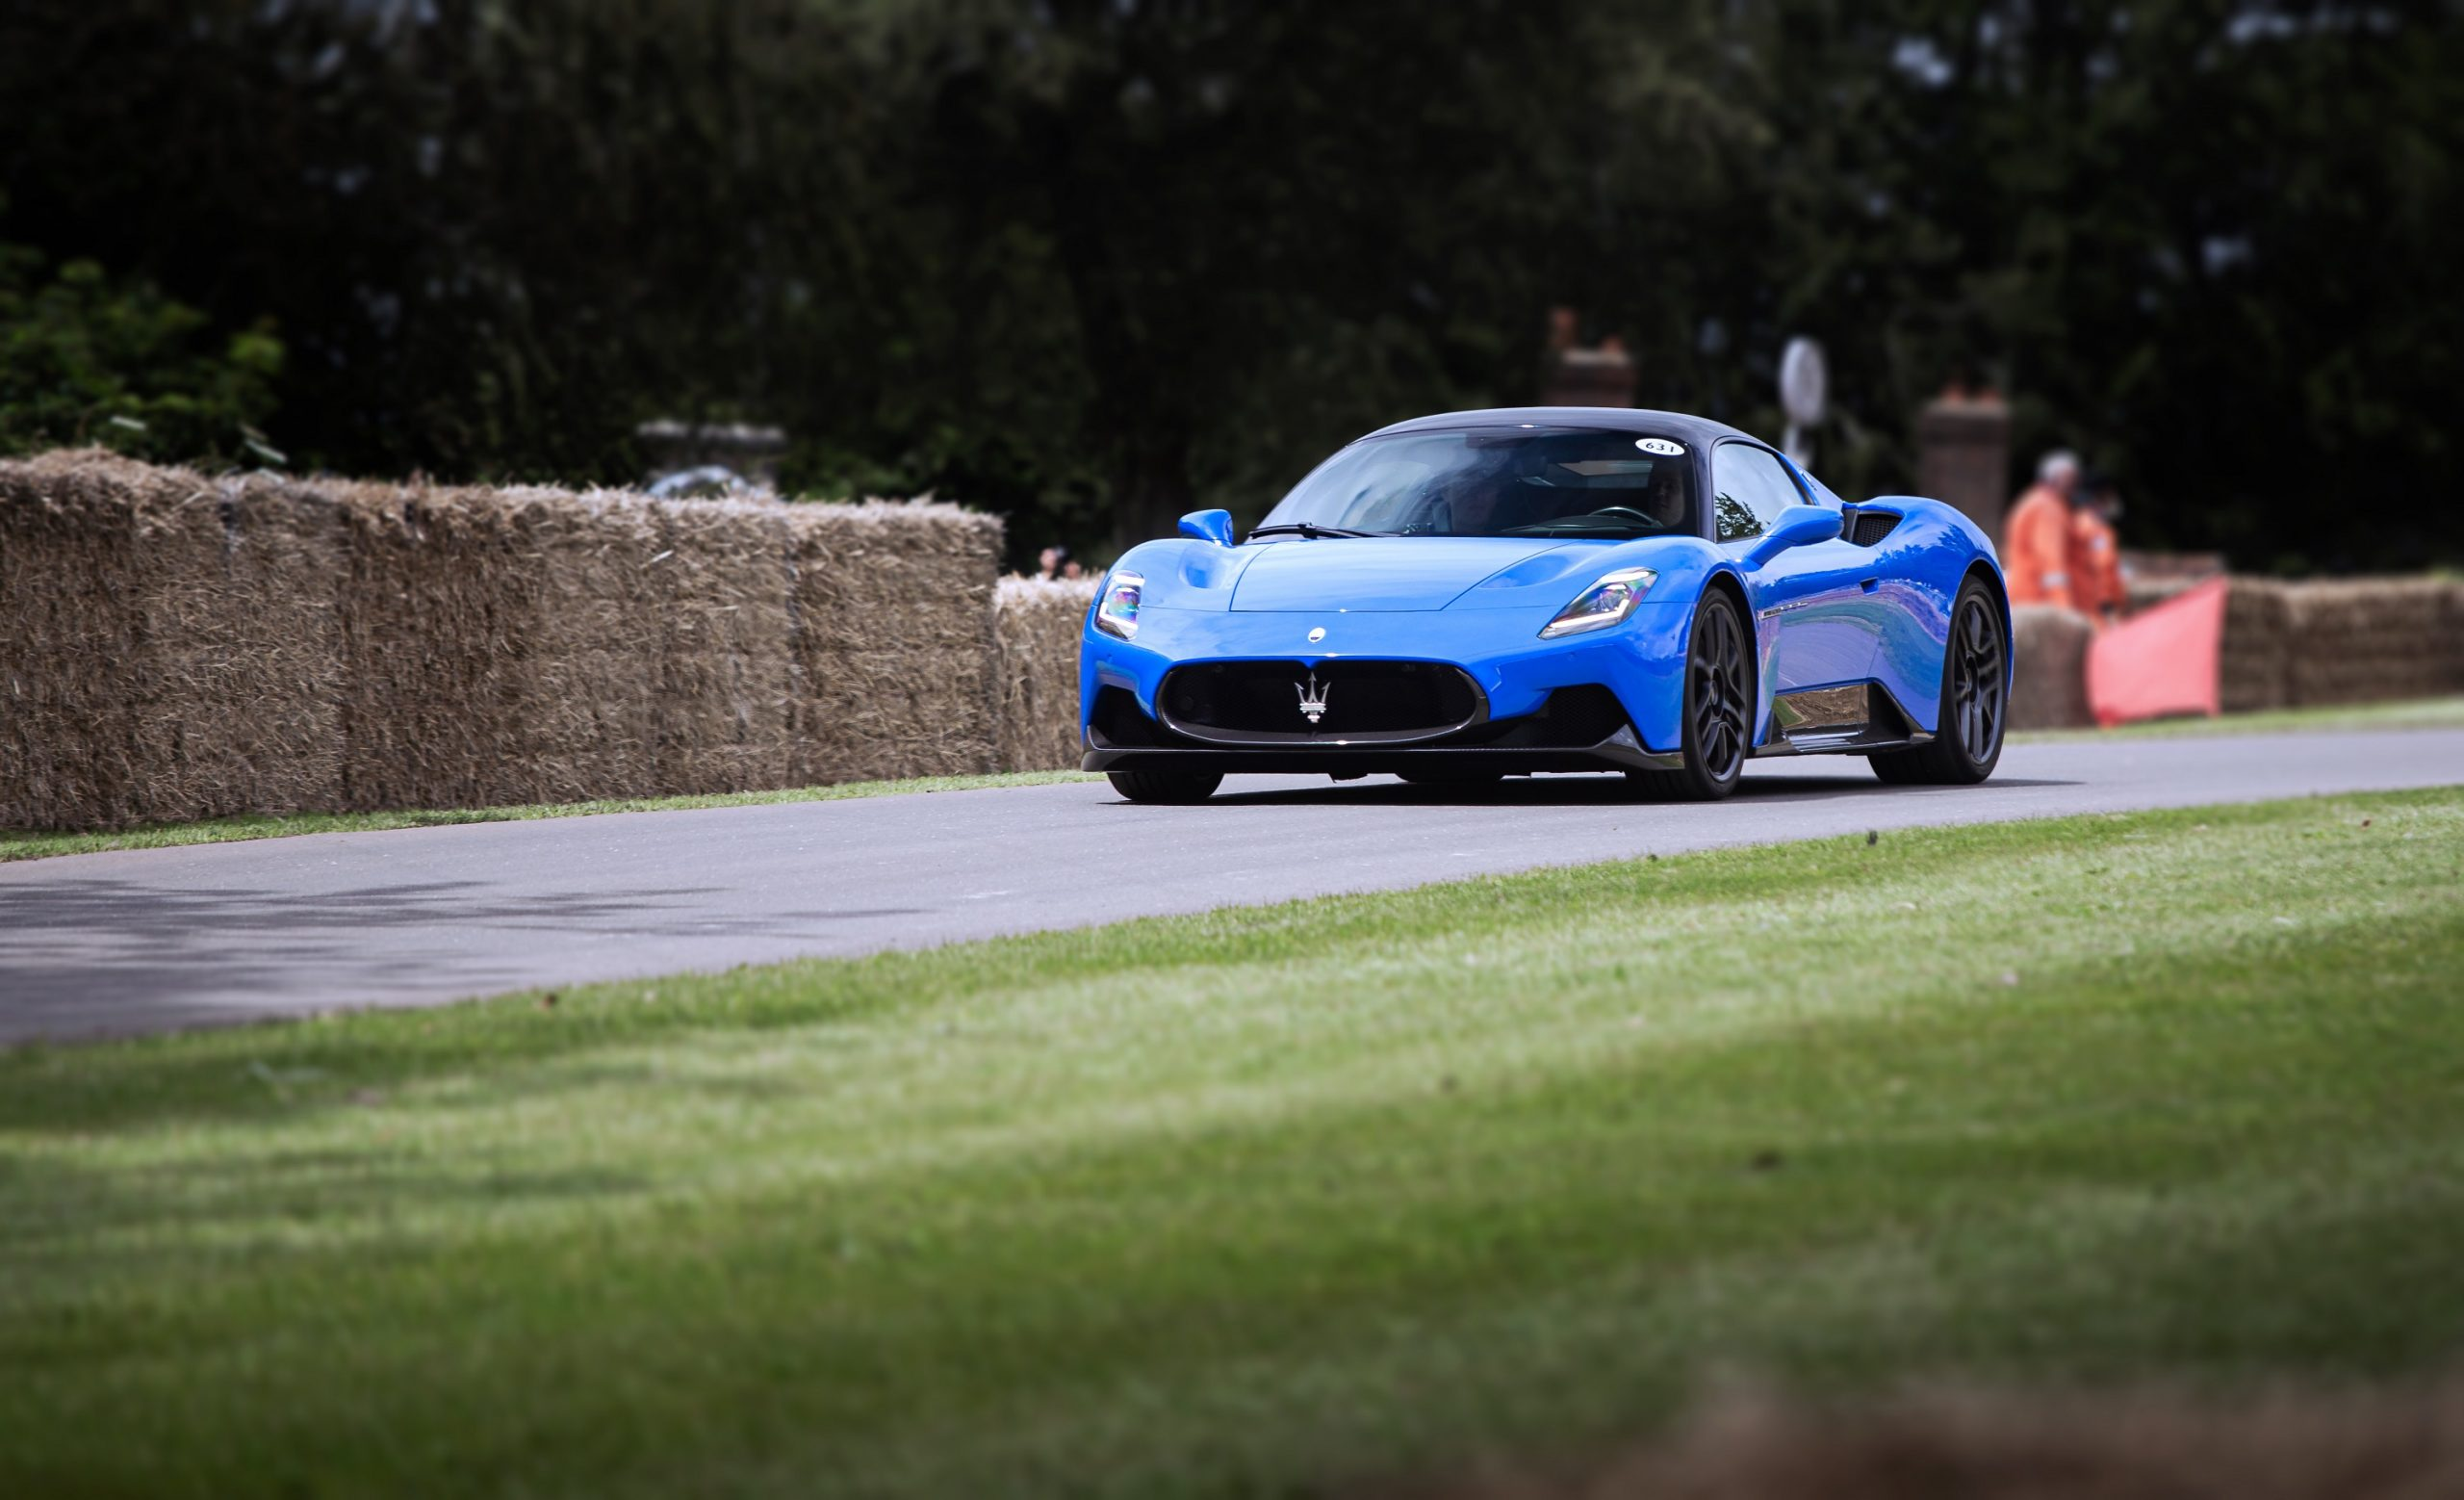 A blue Maserati MC20 shot from the front 3/4 at the Goodwood Festival of Speed